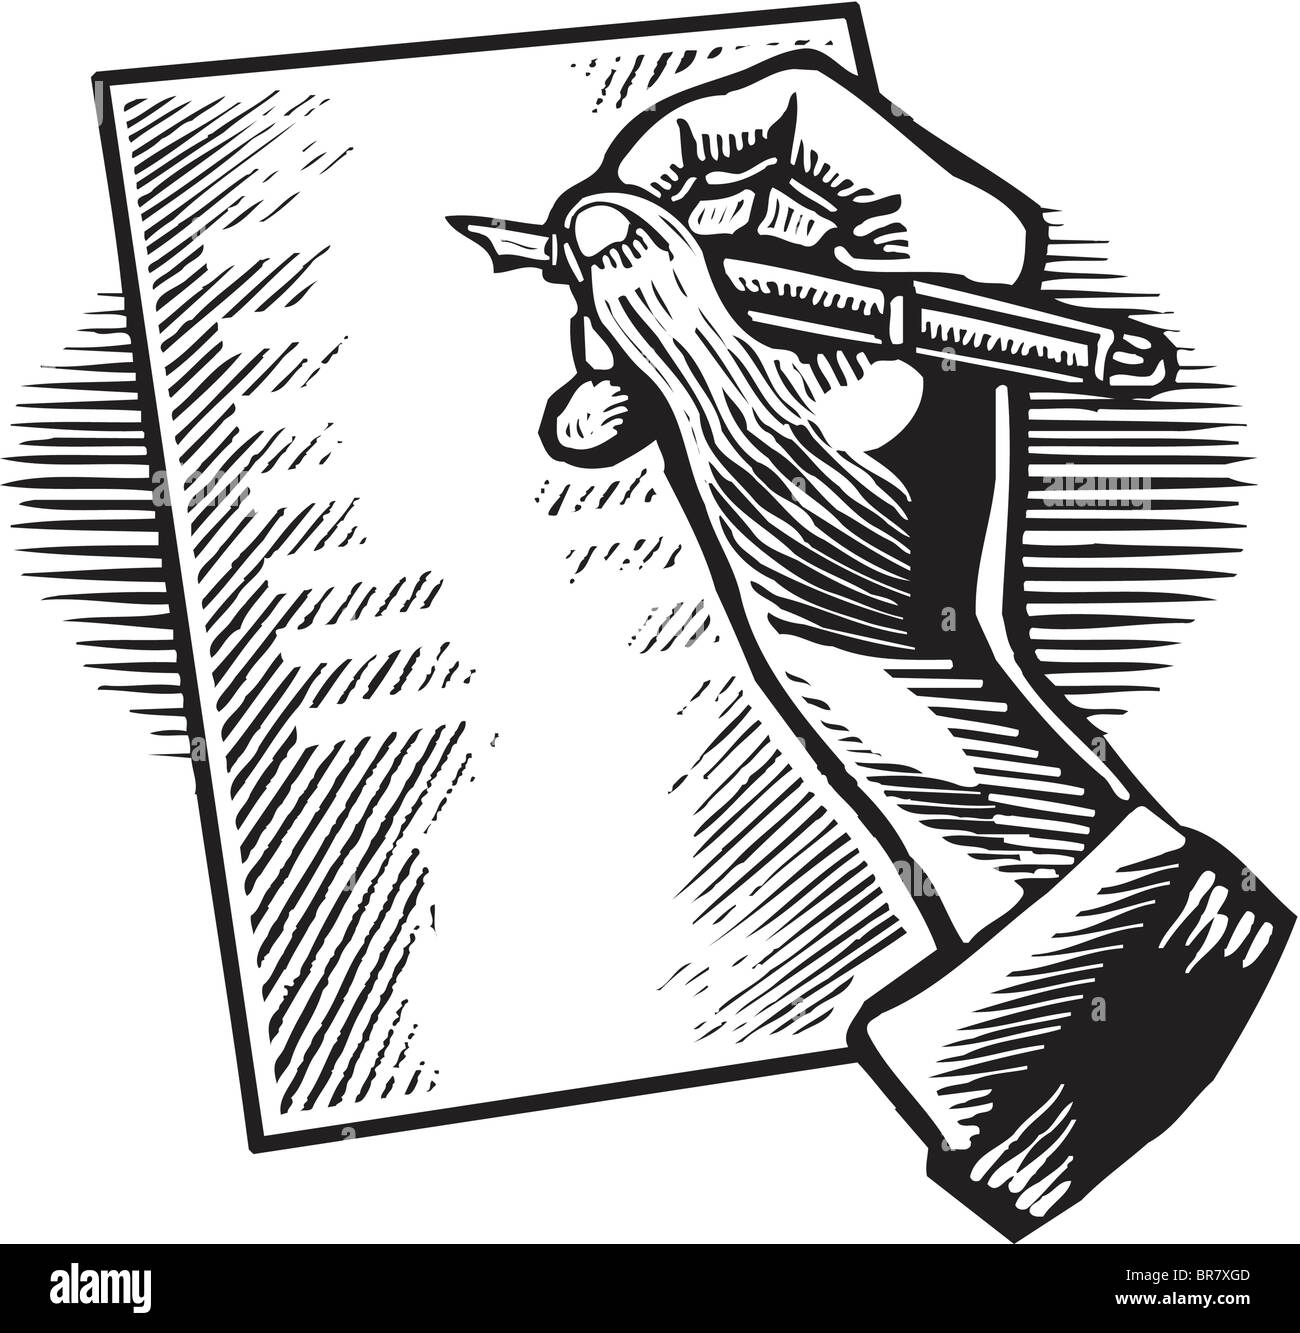 A Person Writing A Letter With A Pen Drawn In Black And White Stock